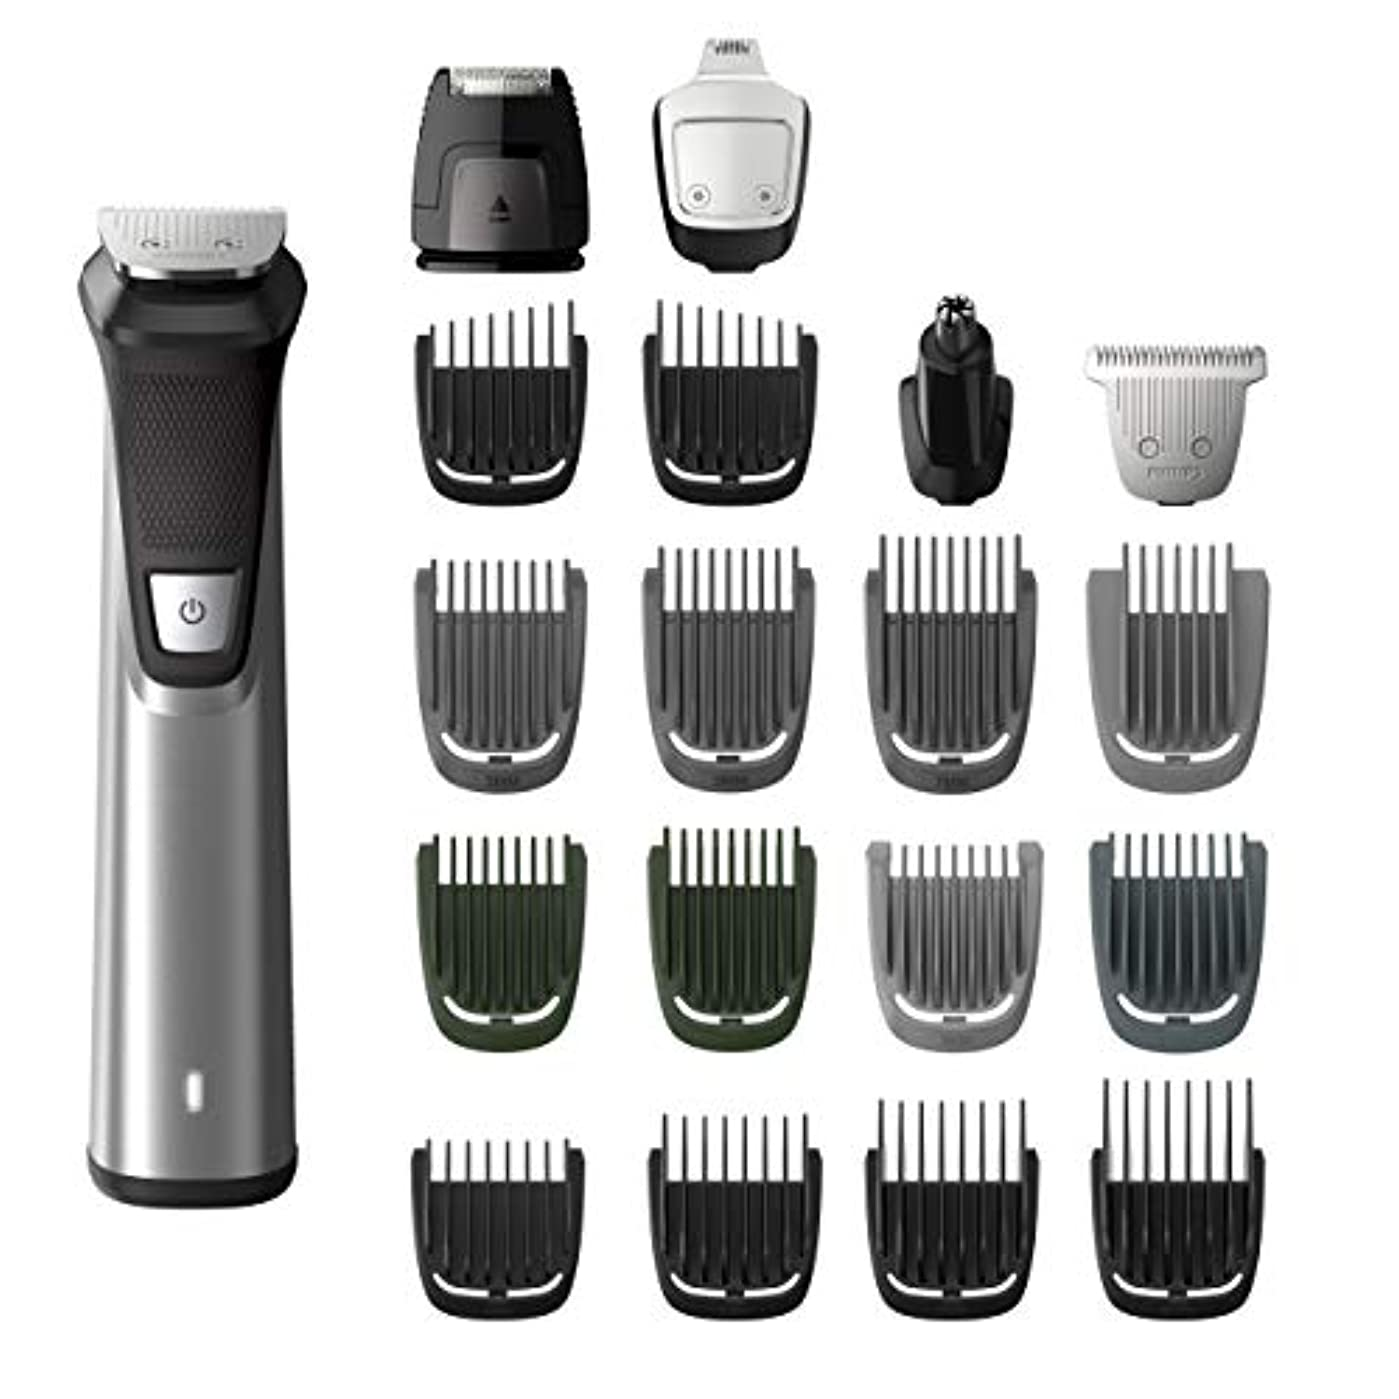 振る舞い変形する尾Philips Norelco MG7750/49 Multigroom 7000 Face Styler and Grooming Kit, 23 Trimming Pieces, DualCut Technology...